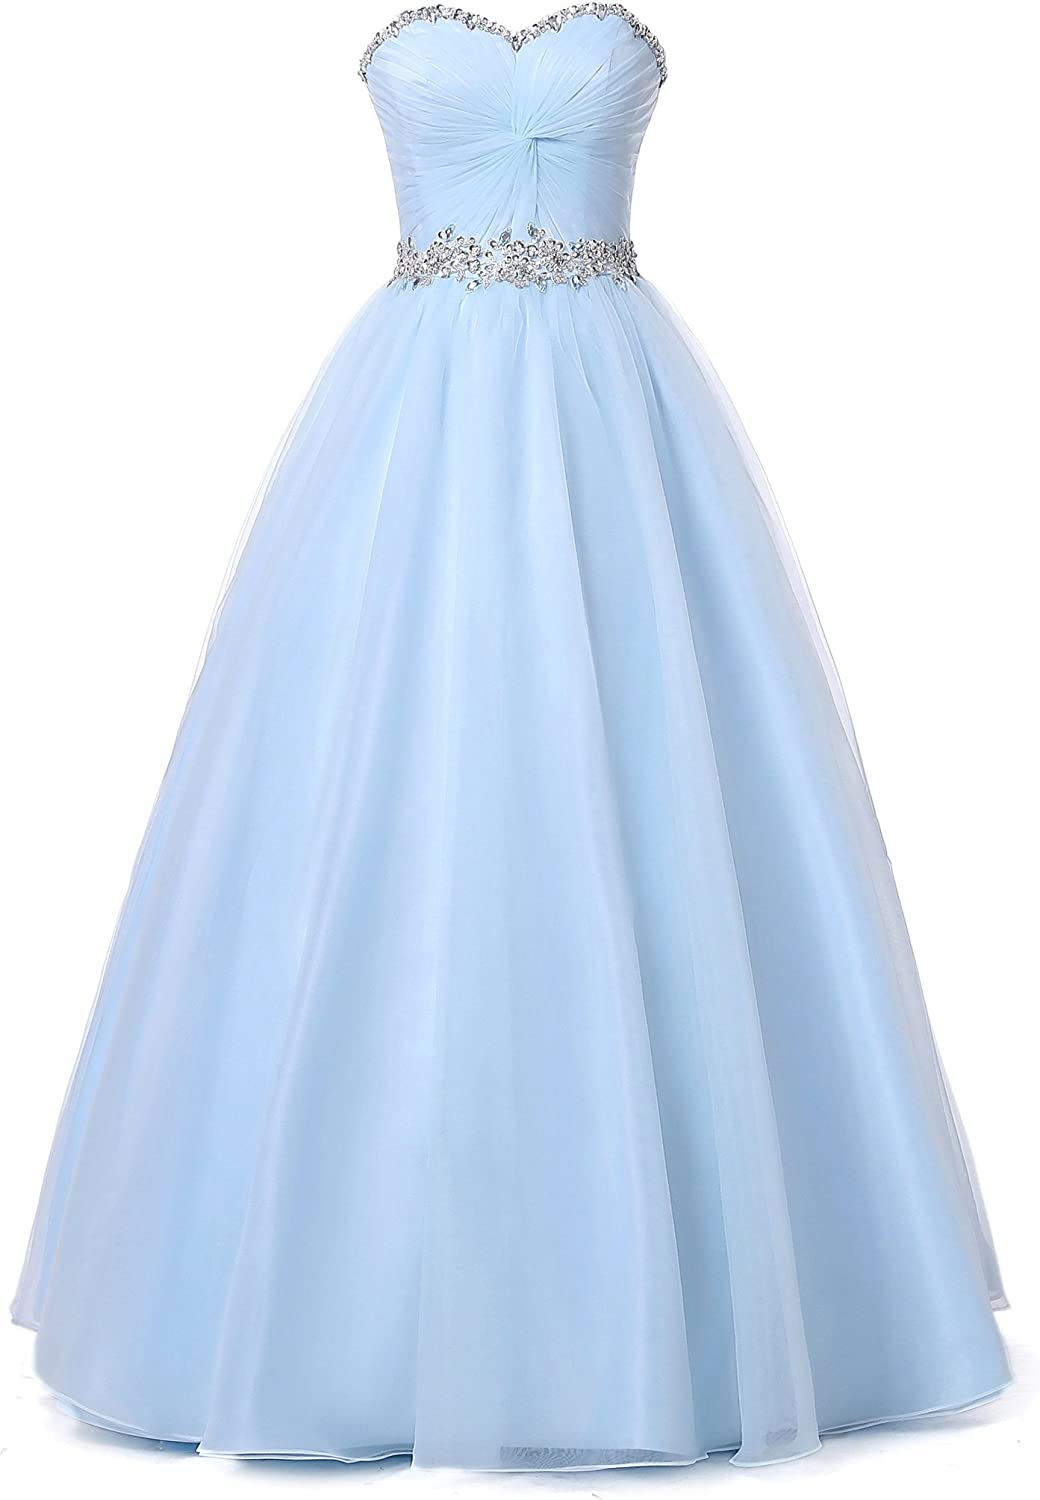 Alexzendra Tulle Long Prom Dress For Girls Beaded Sweetheart Party Gowns Light bluee